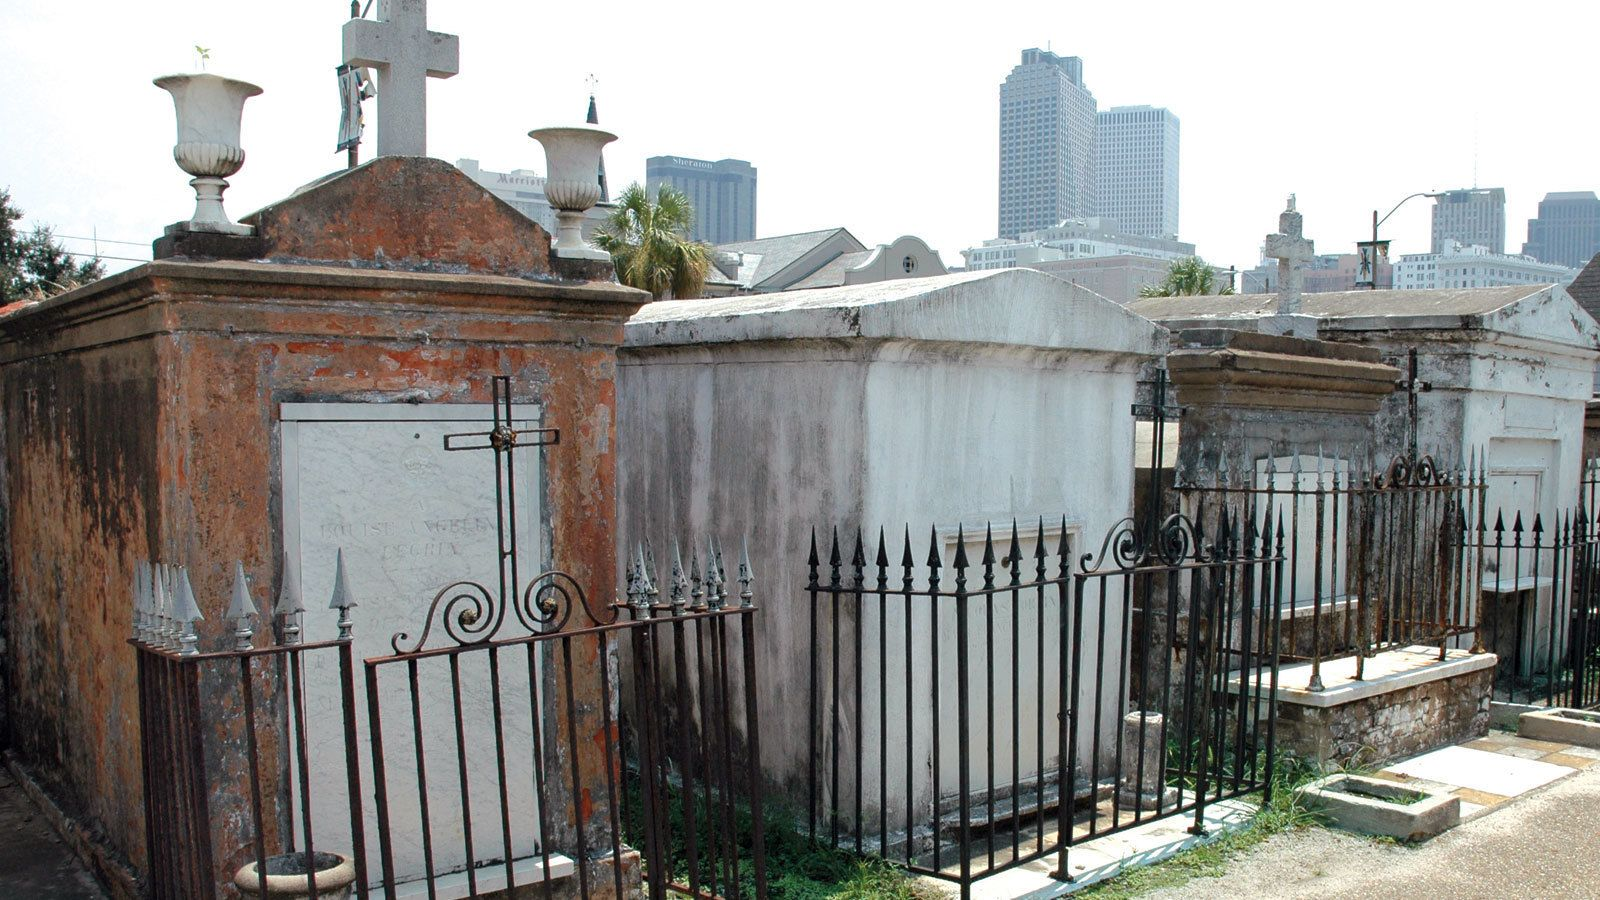 French quarter cemetery in New Orleans